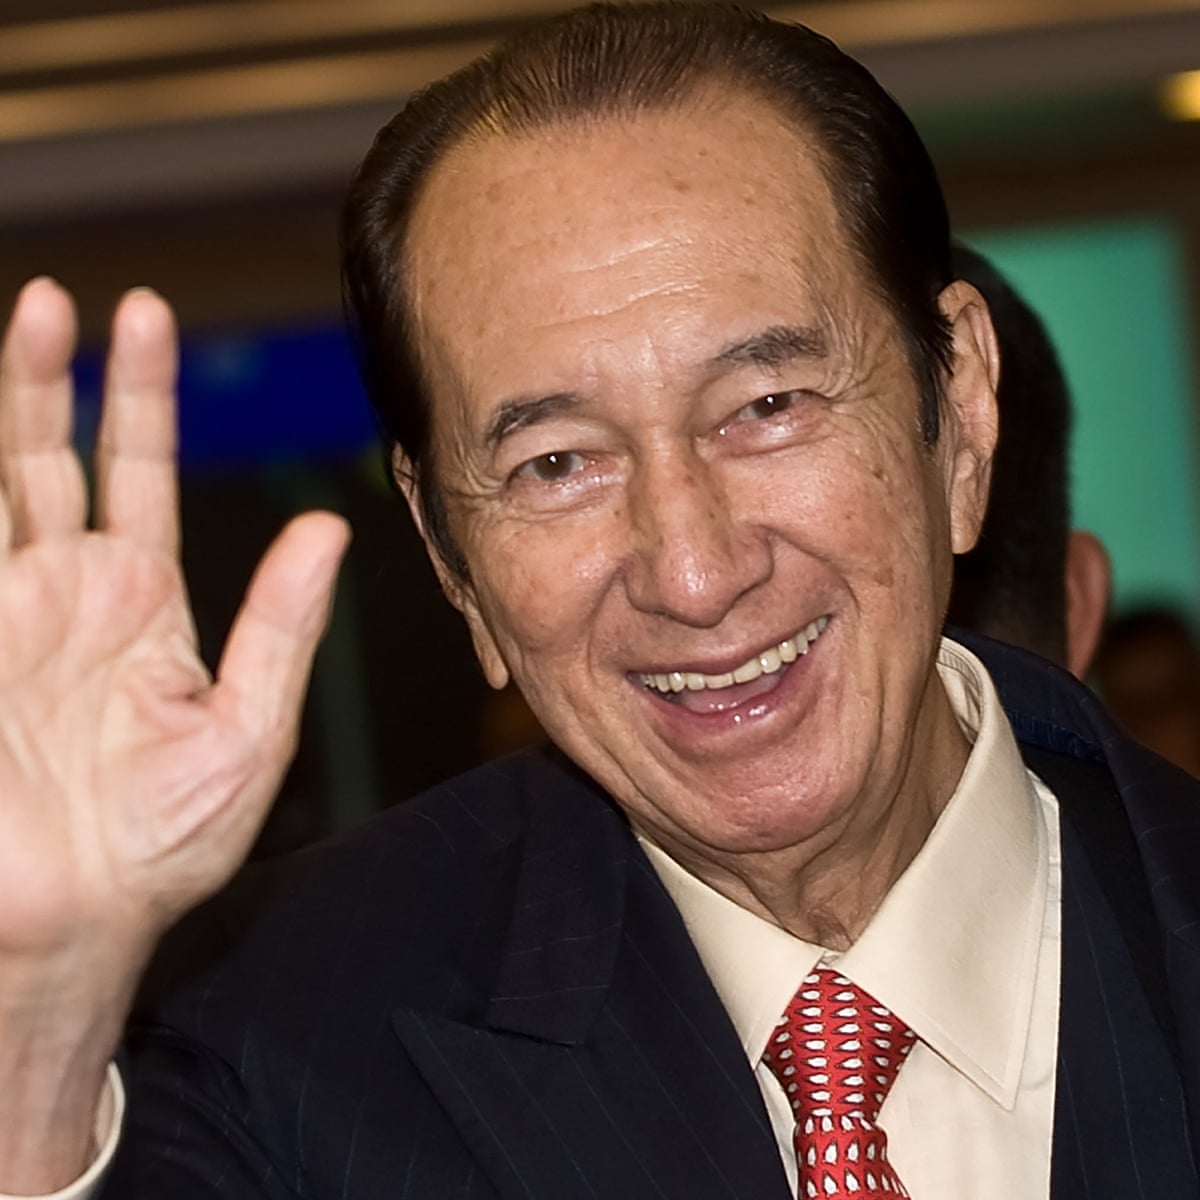 Stanley Ho Flamboyant Godfather Of Macau Casinos Dies Aged 98 Hong Kong The Guardian